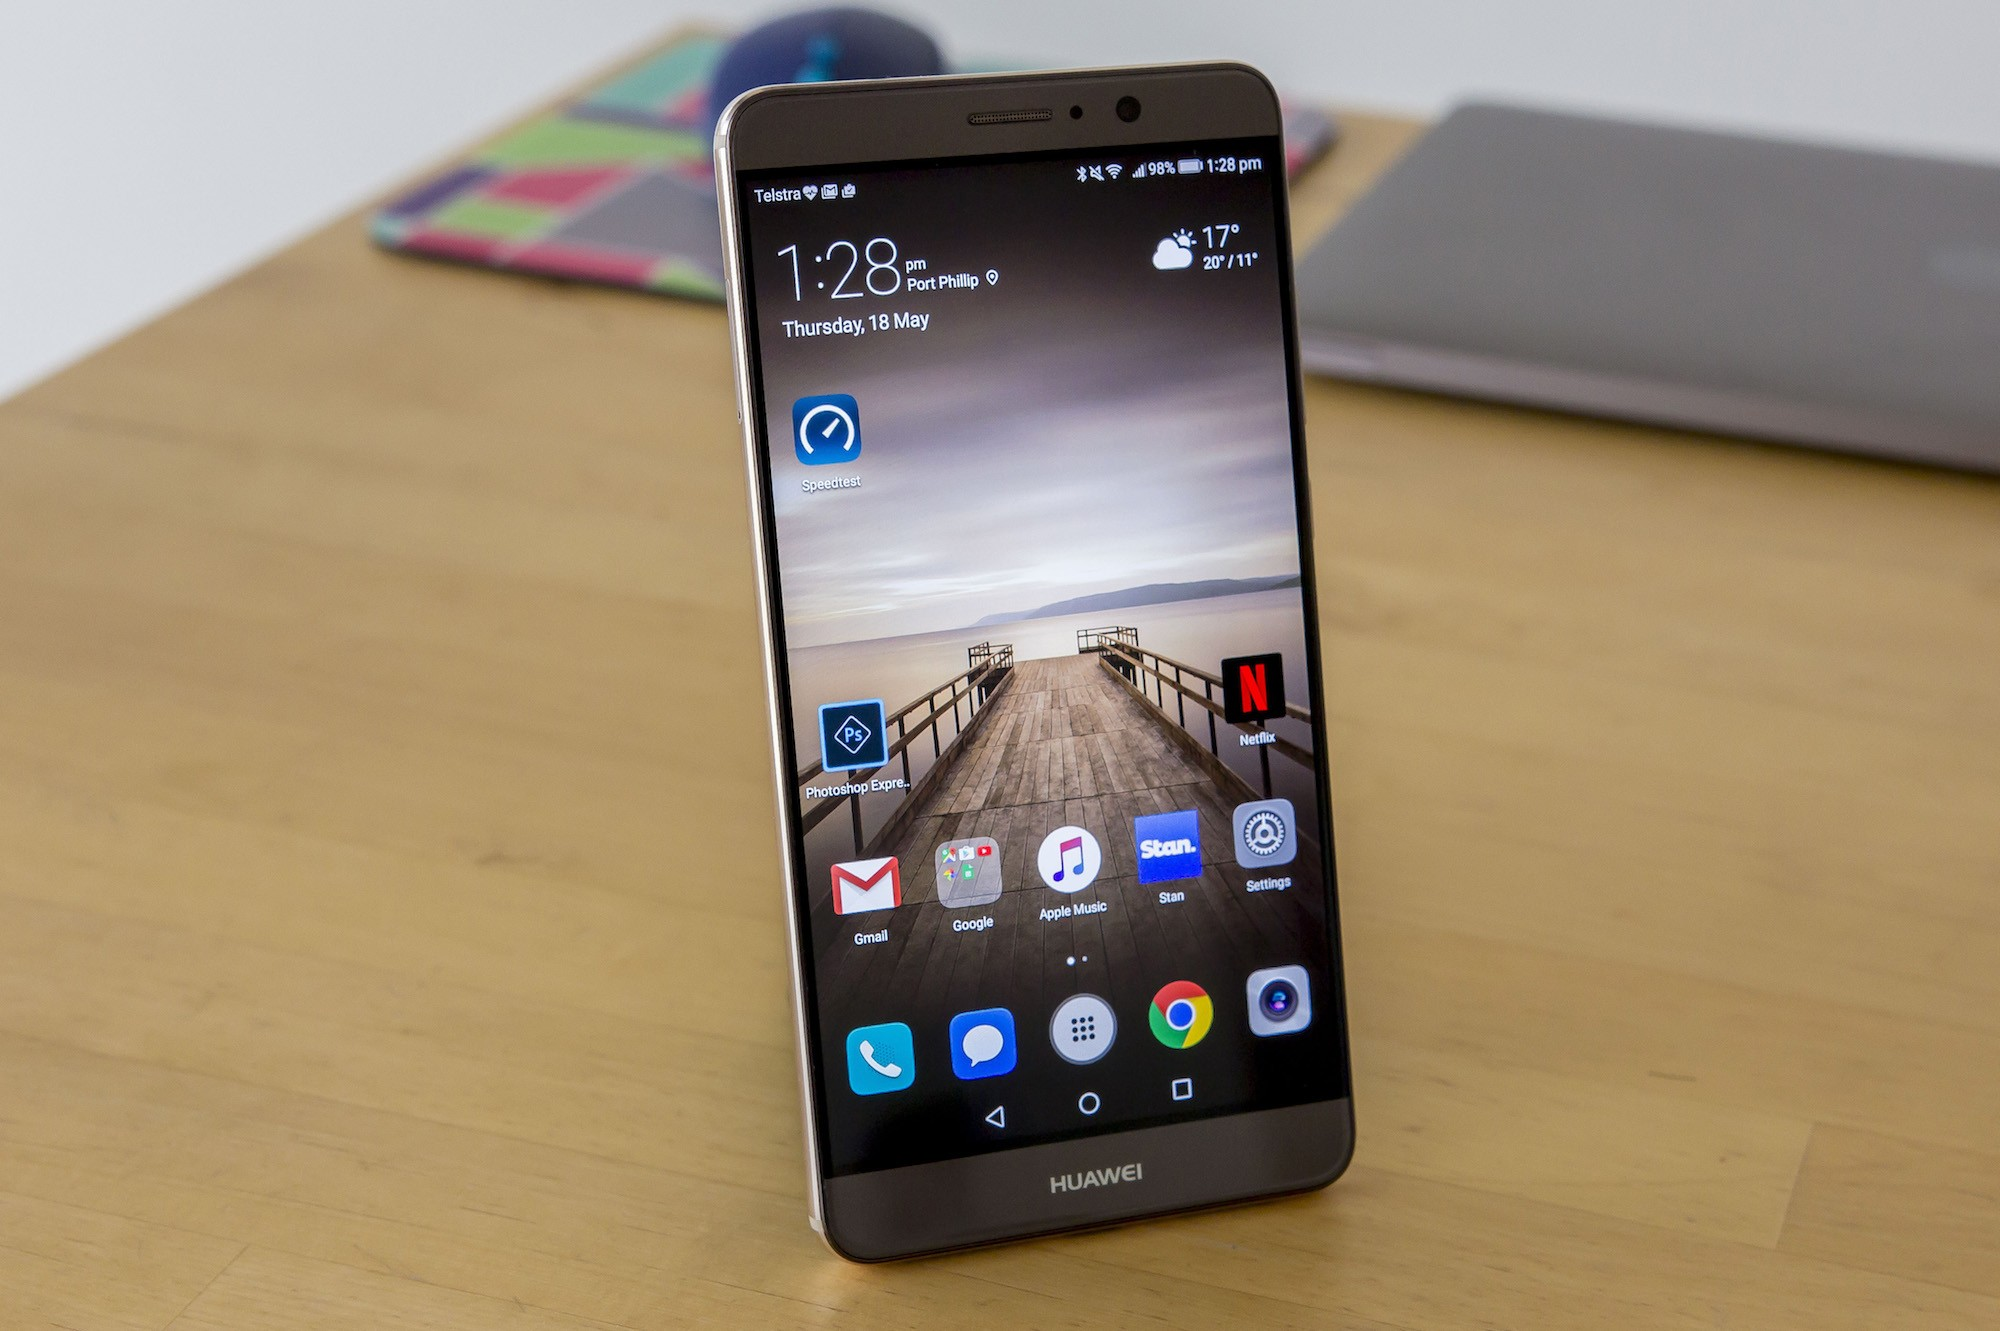 Huawei Mate 9 Review: Massive Screen, Tight Bezels, and ...